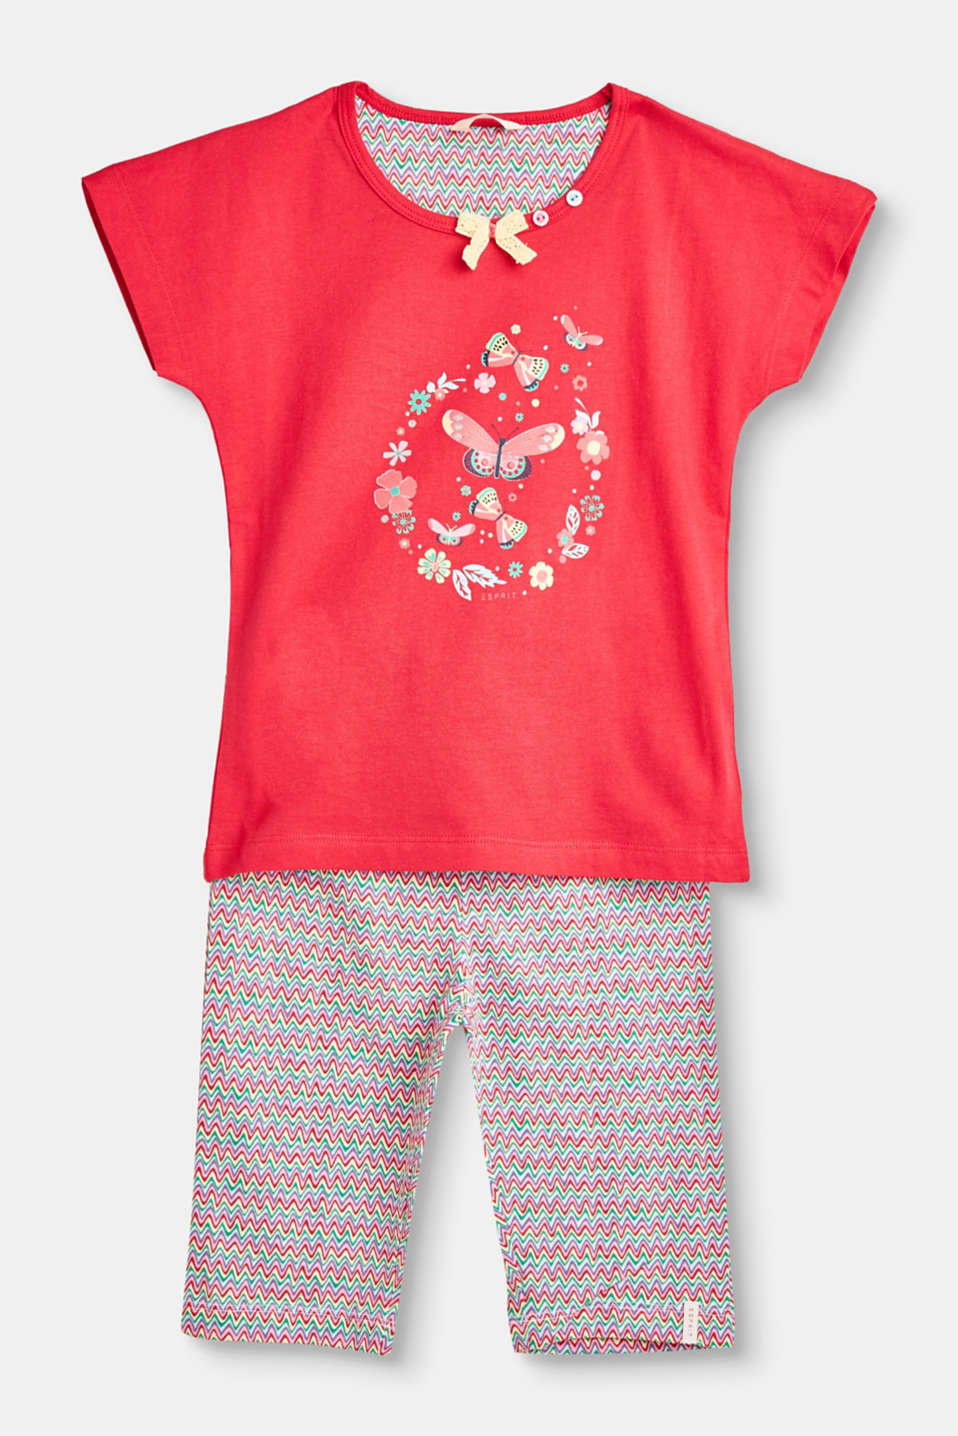 Esprit - Printed jersey pyjama set, 100% cotton